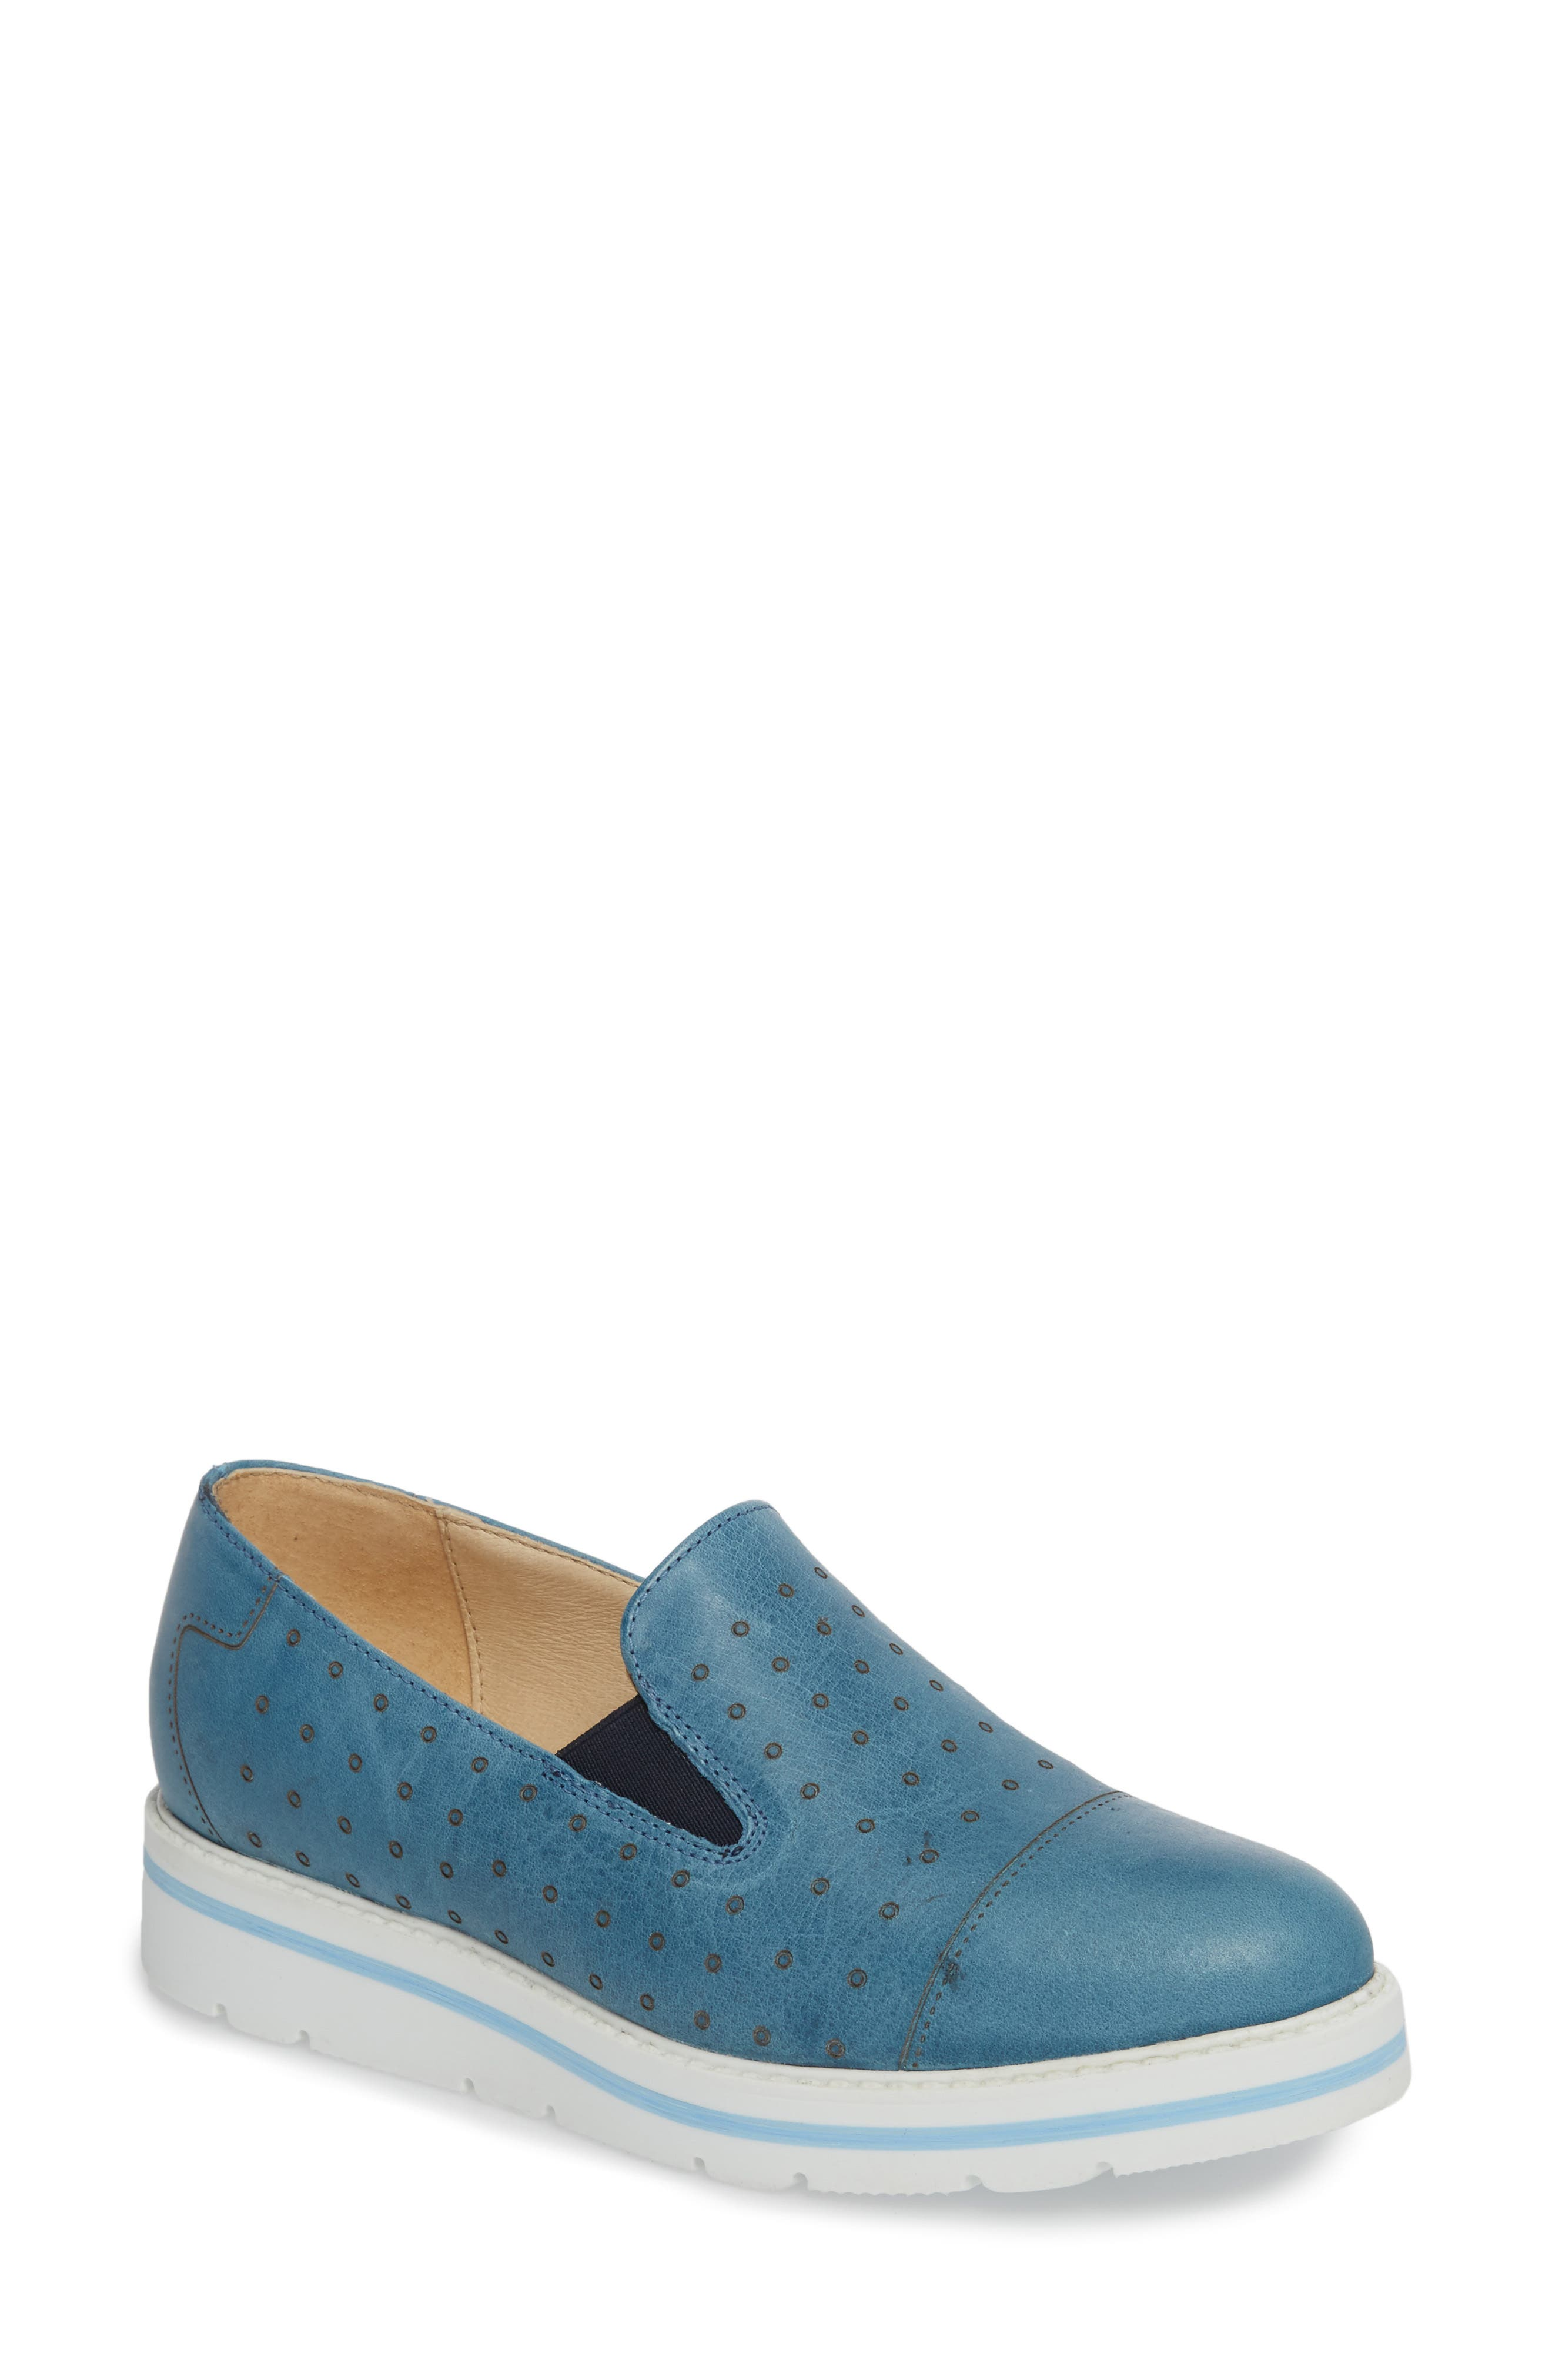 Leigh Slip-On Sneaker,                         Main,                         color, Blue Glamour Leather